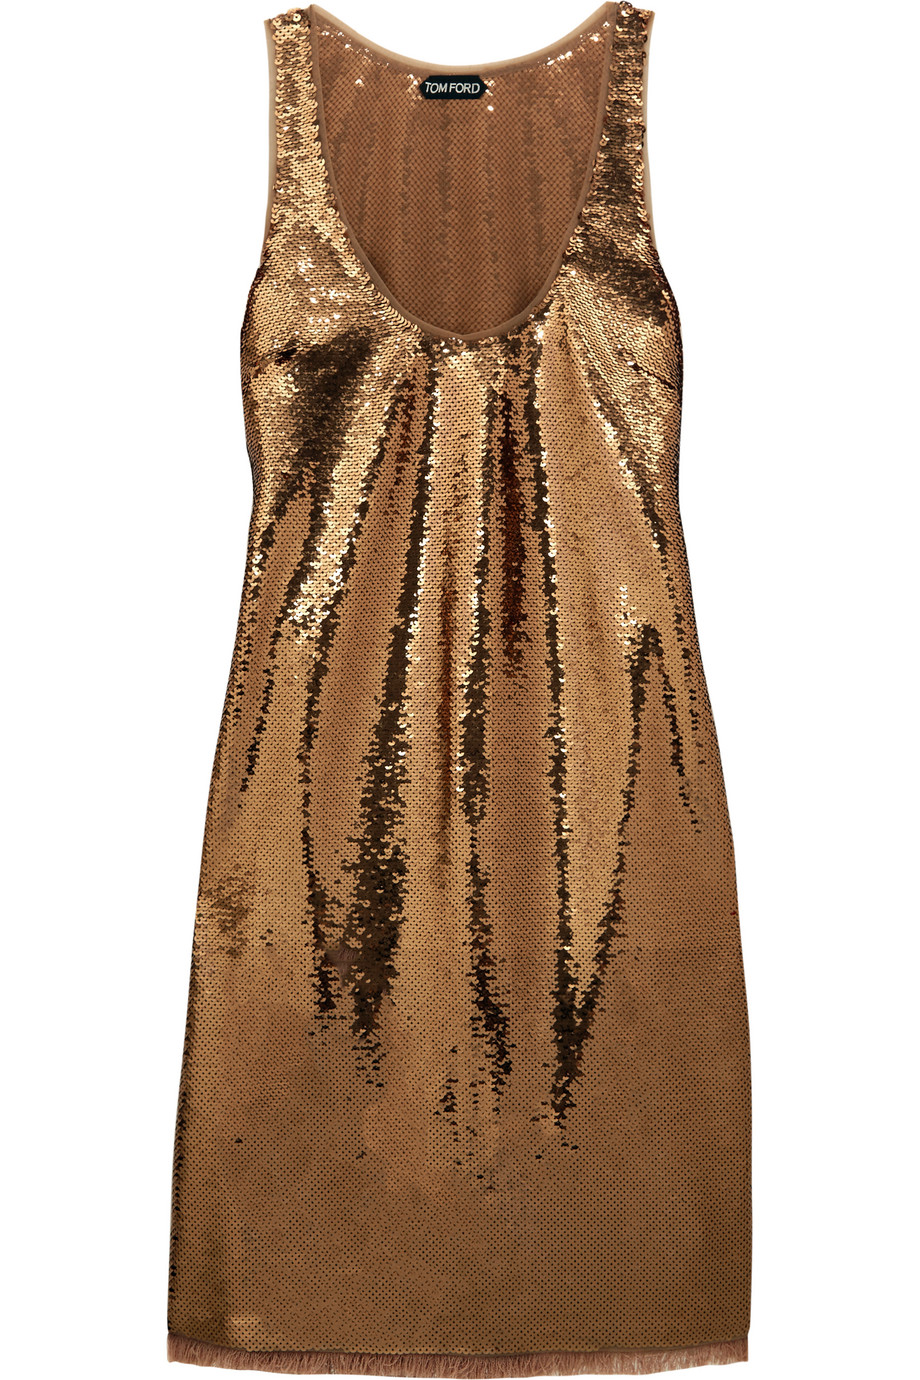 Sequined Stretch-Tulle Mini Dress, Gold/Metallic, Women's, Size: 38